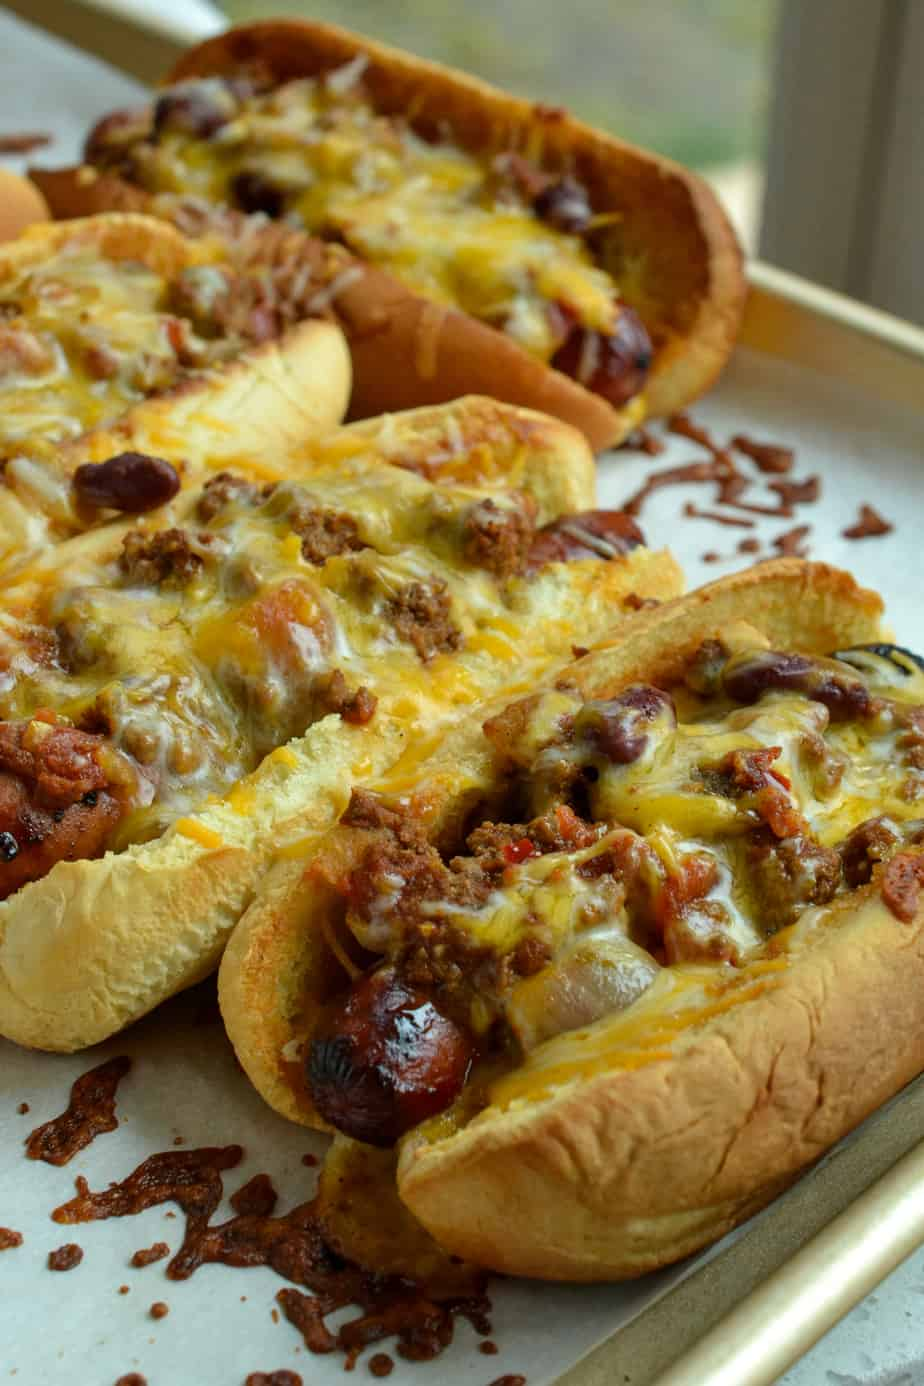 I love to make a big batch of chili and freeze half of it for these Chili Cheese dogs for the following week.